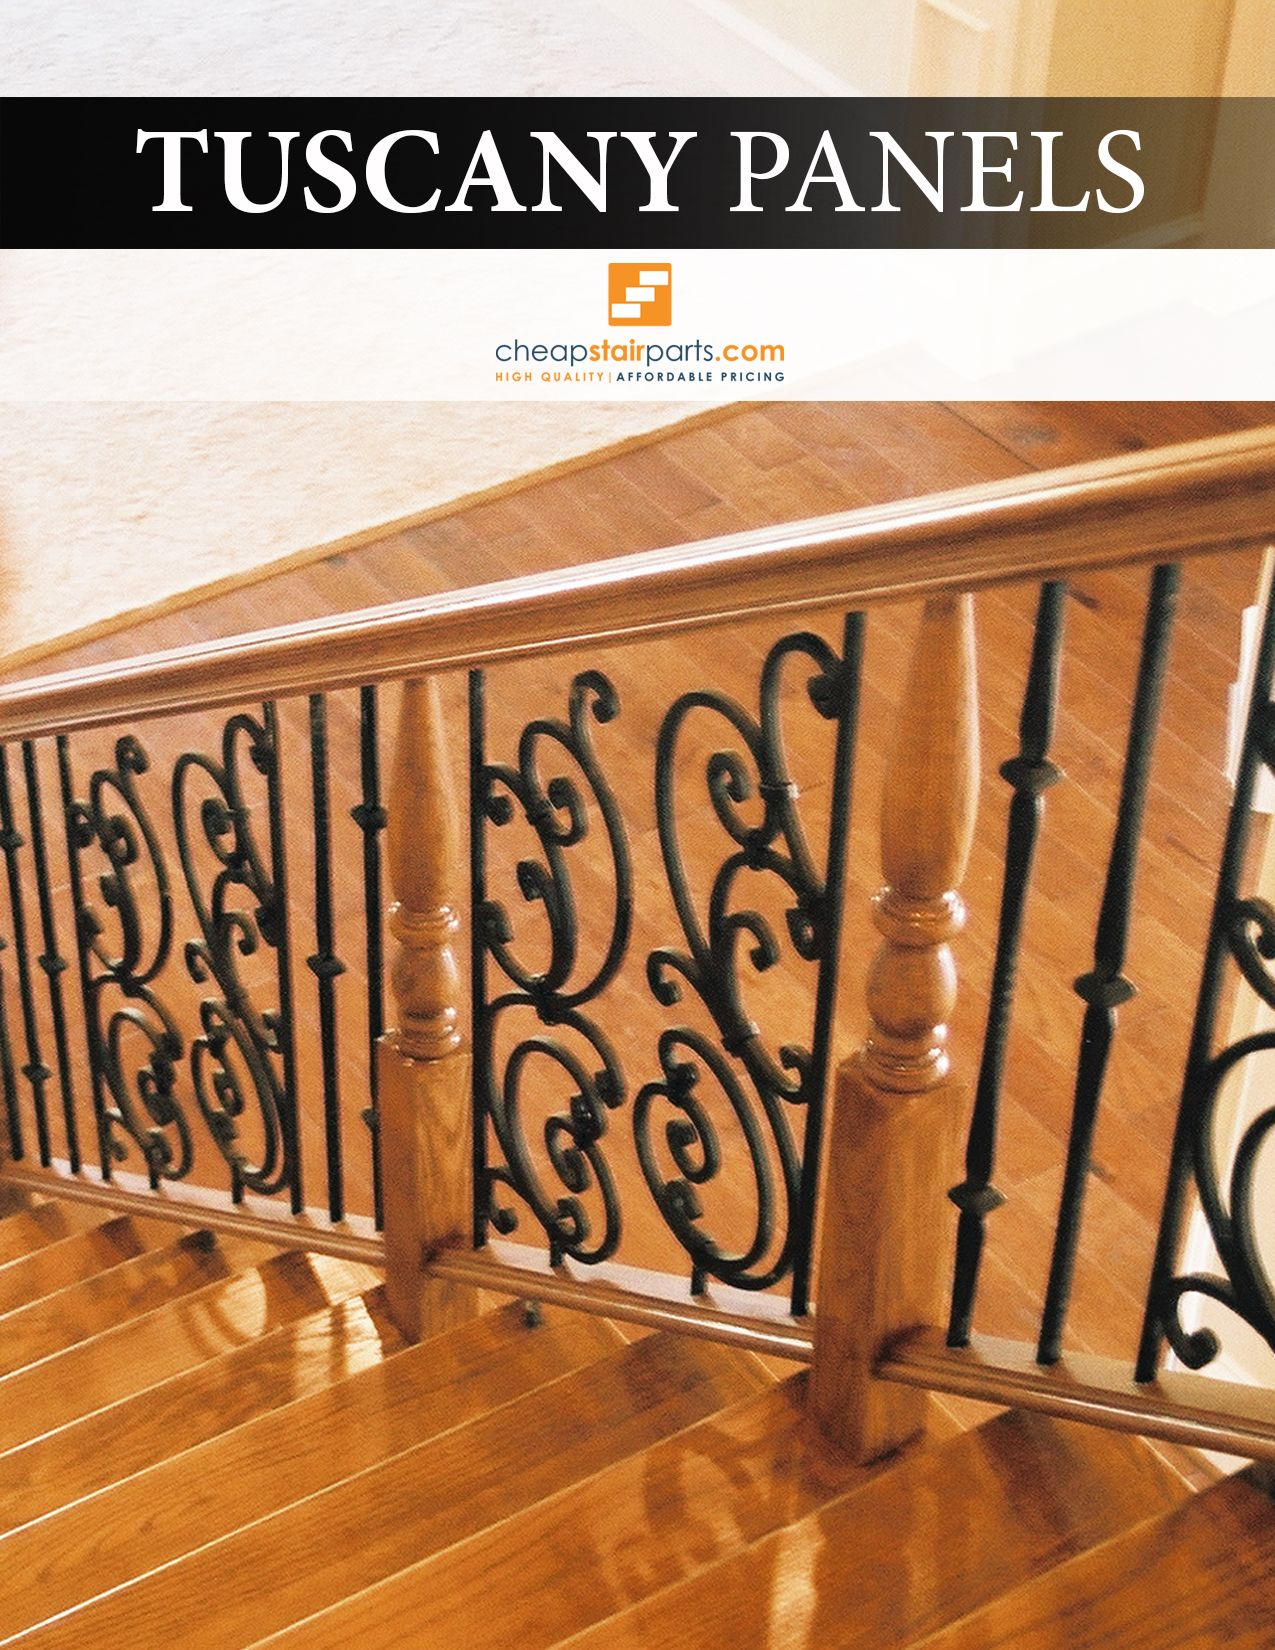 Pin By Cheap Stair Parts On Cheapstairparts Blog Stair Paneling